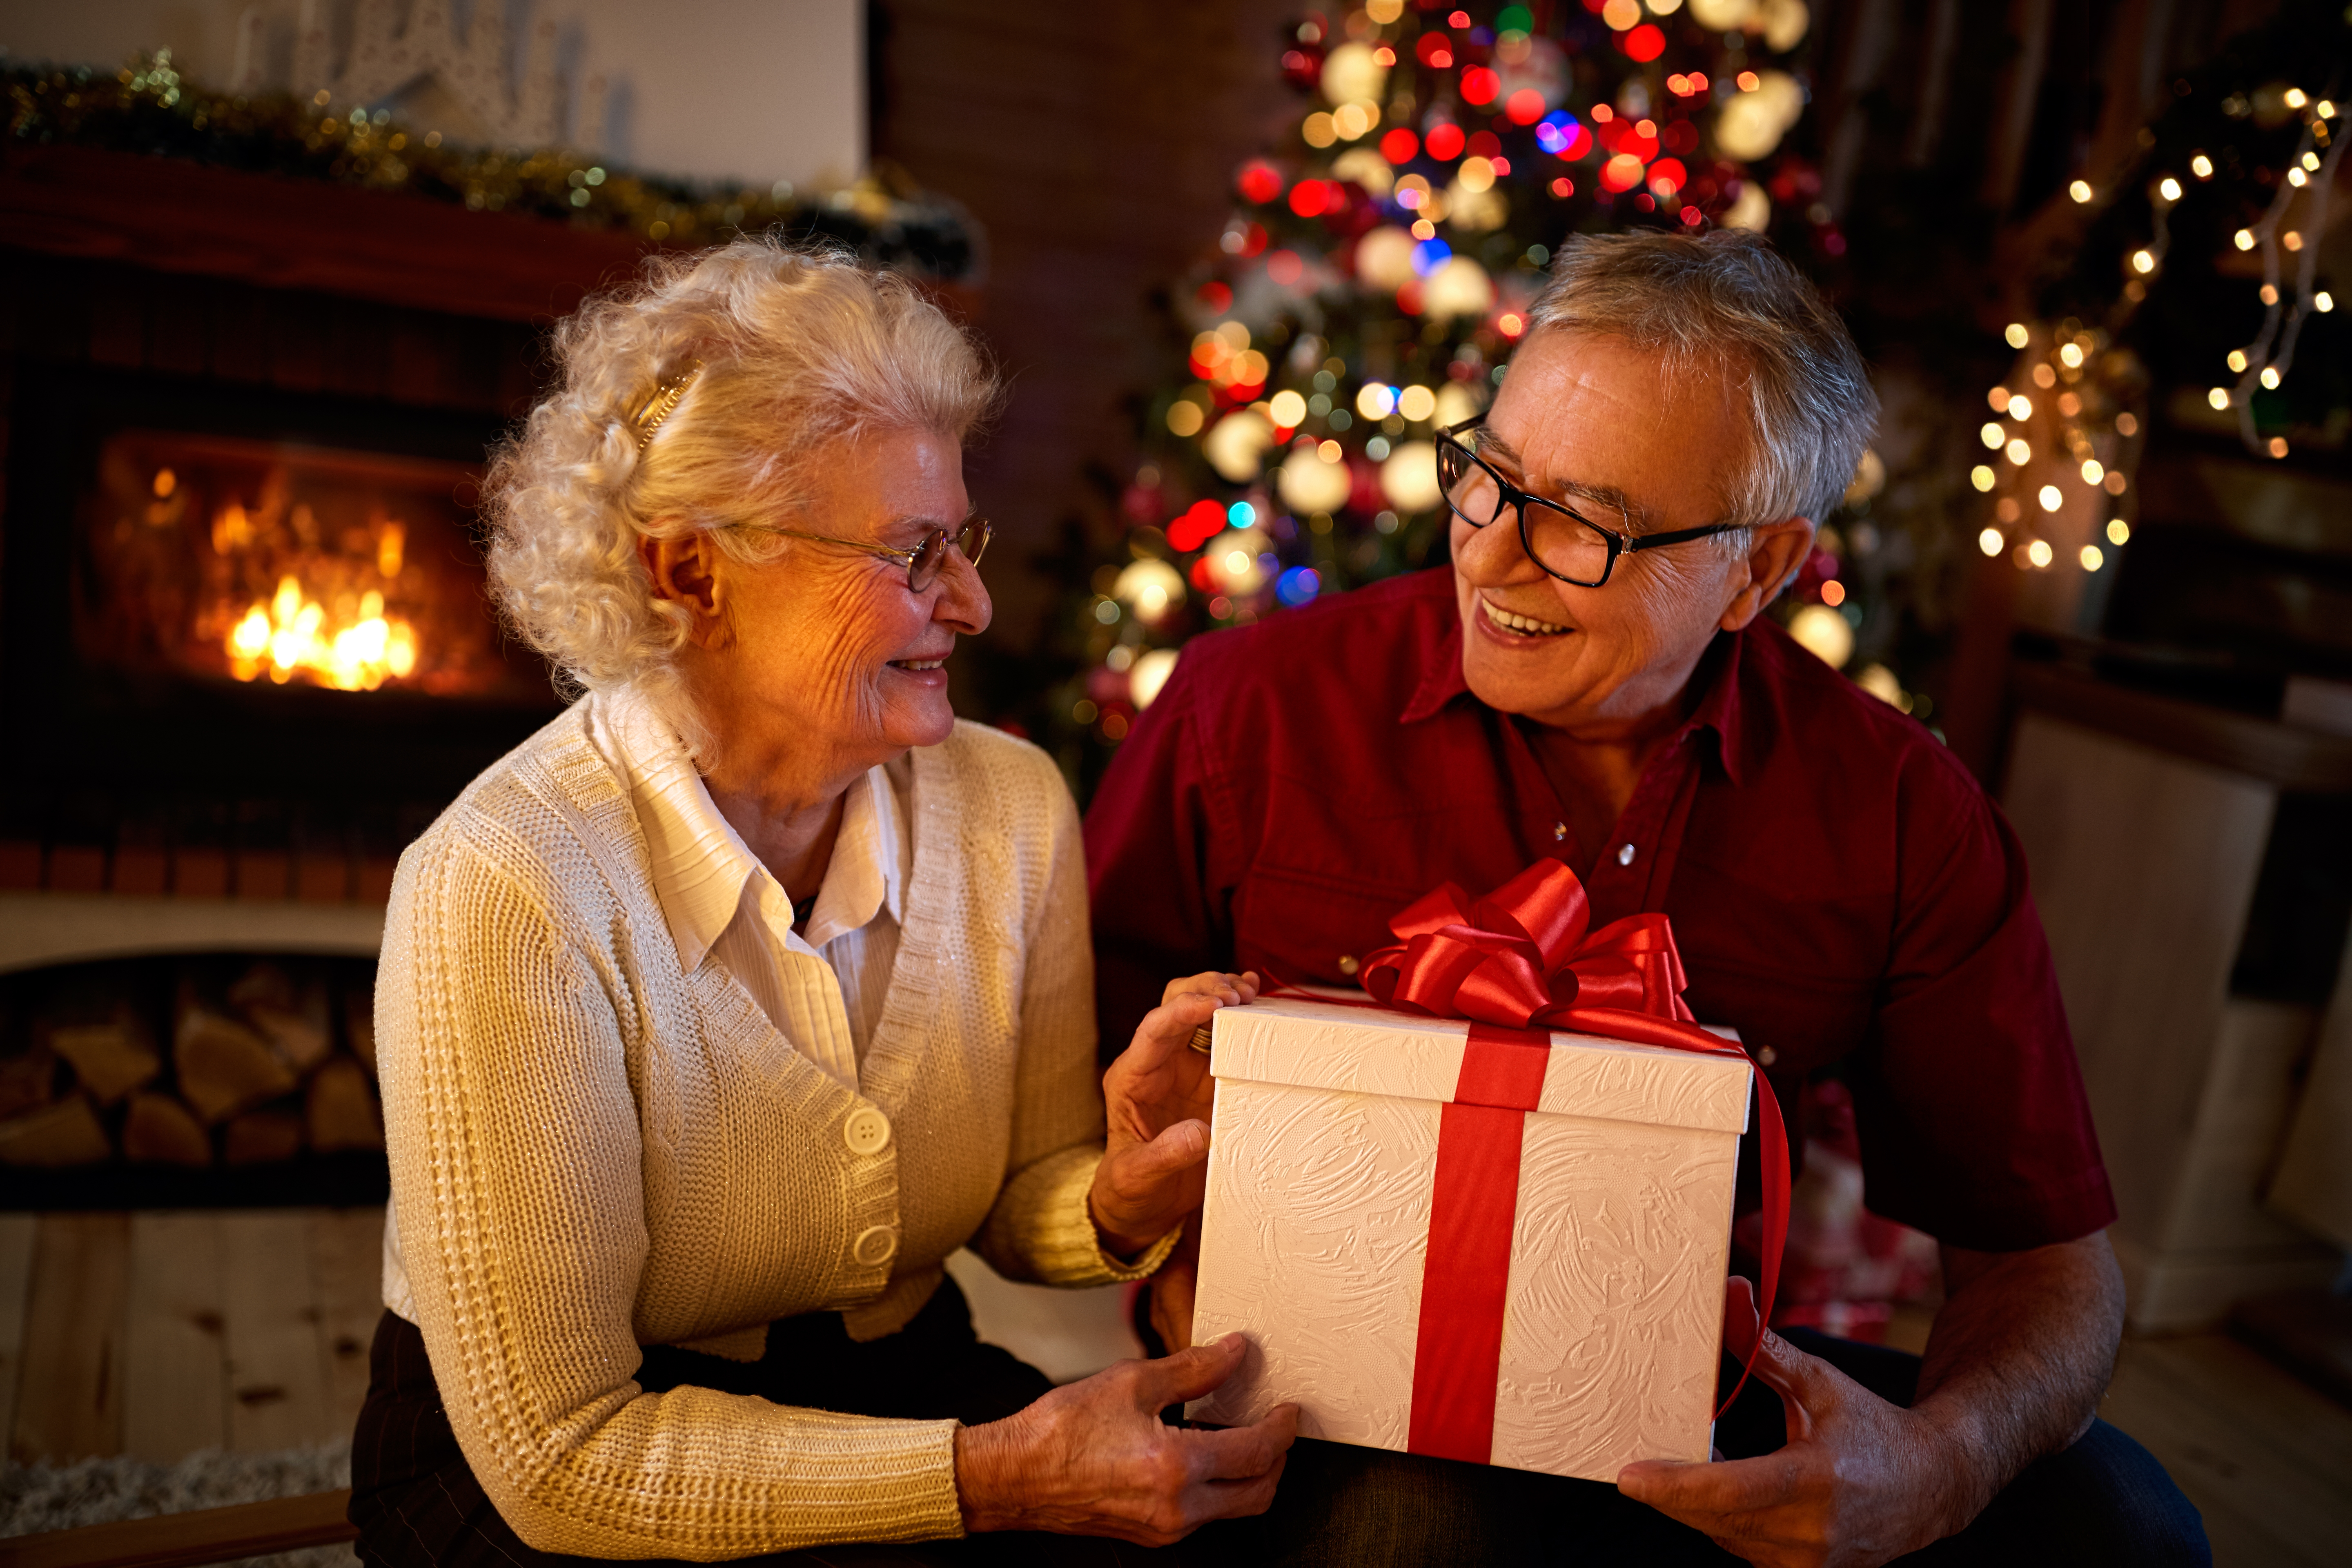 Image: Top gift ideas for seniors